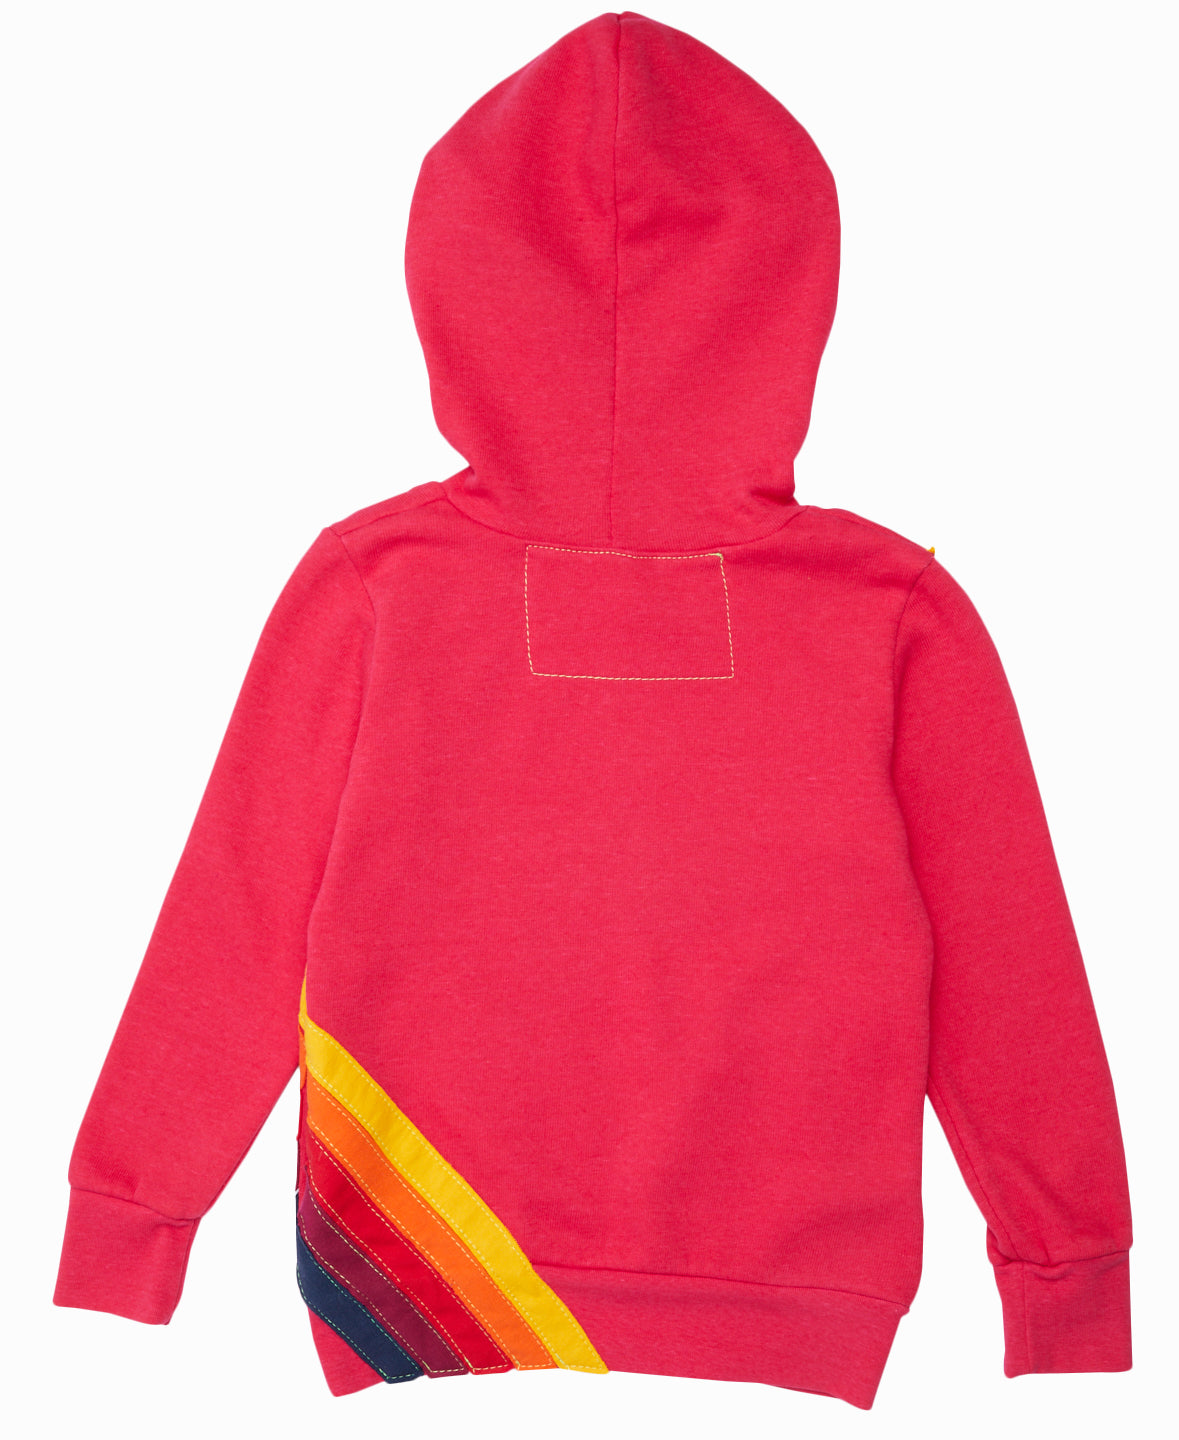 Pink Striped Hooded Pullover Sweatshirt